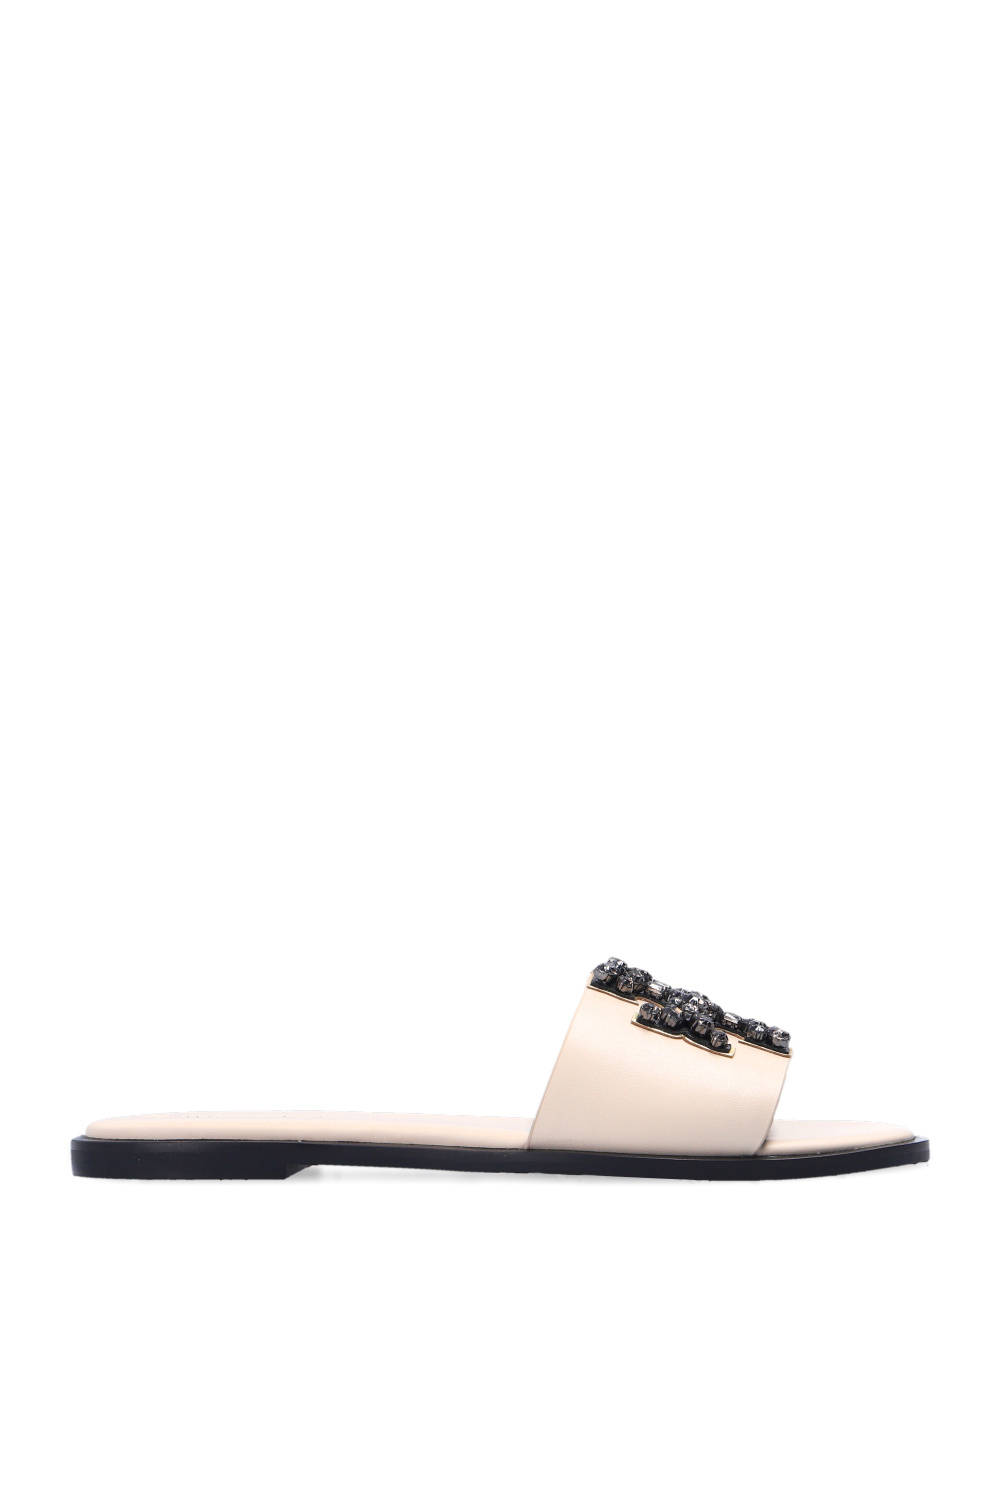 Tory Burch Leather slides